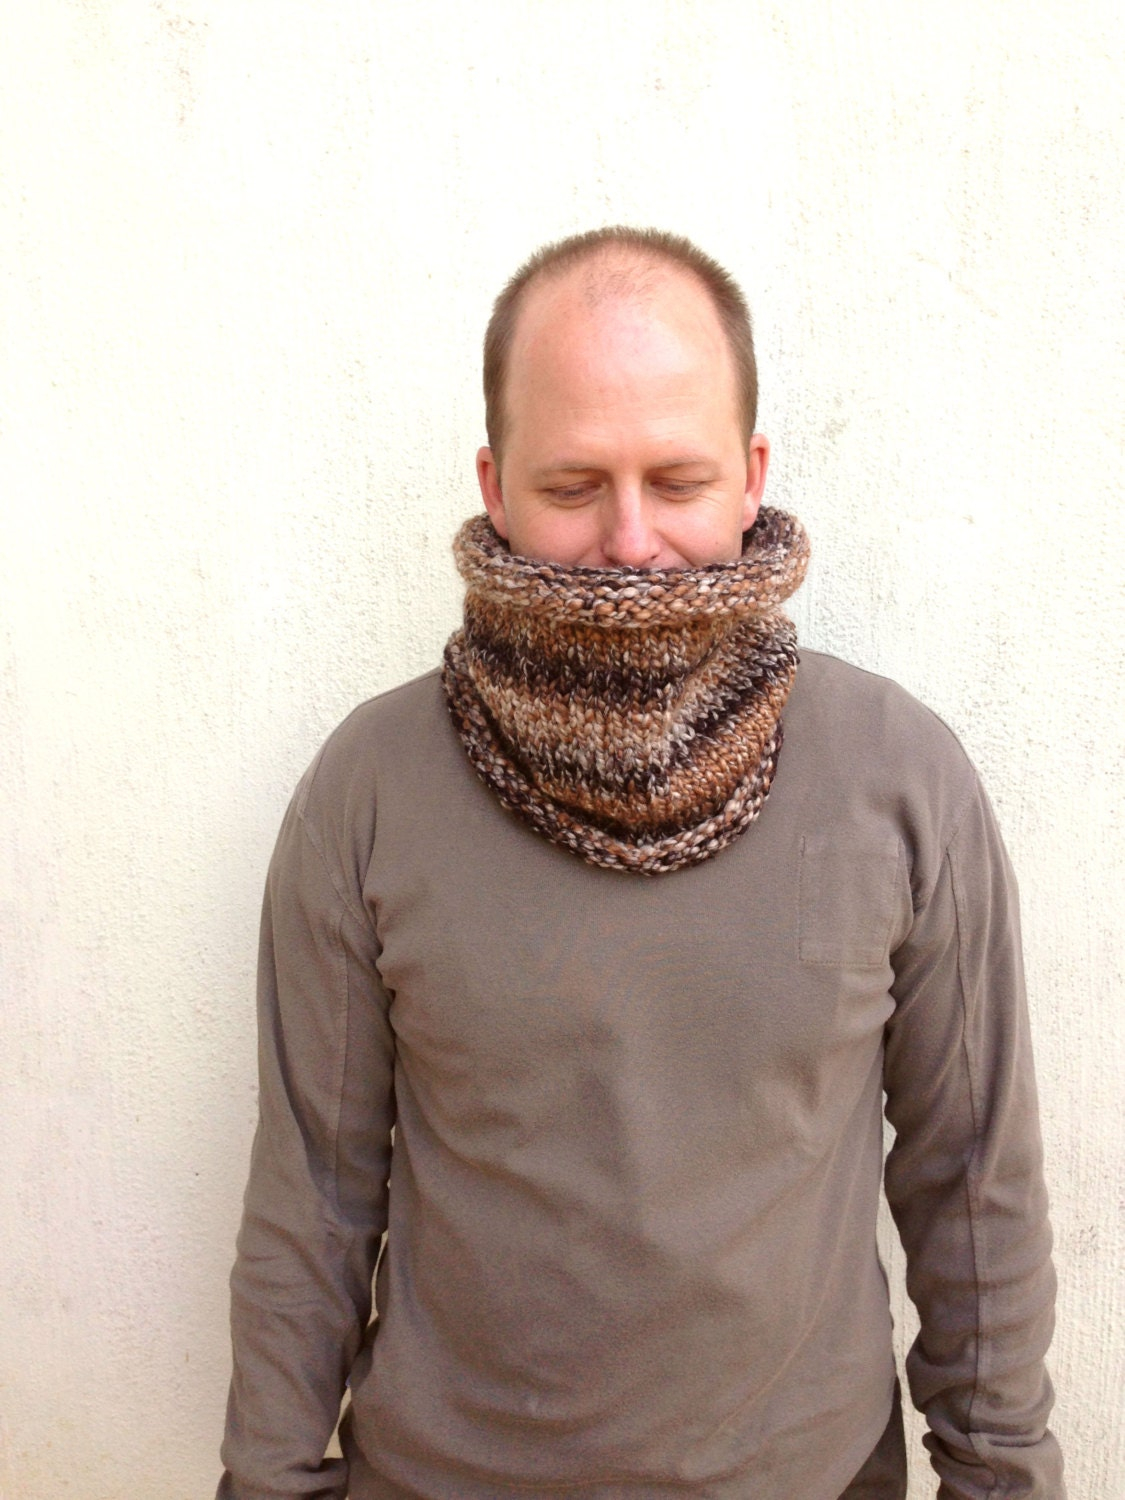 Knit Cowl, Ombre scarf, Unisex scarf, Neckwarmer, Unisex cowl, Multi - colored yarn, for him and for her - VeraJayne